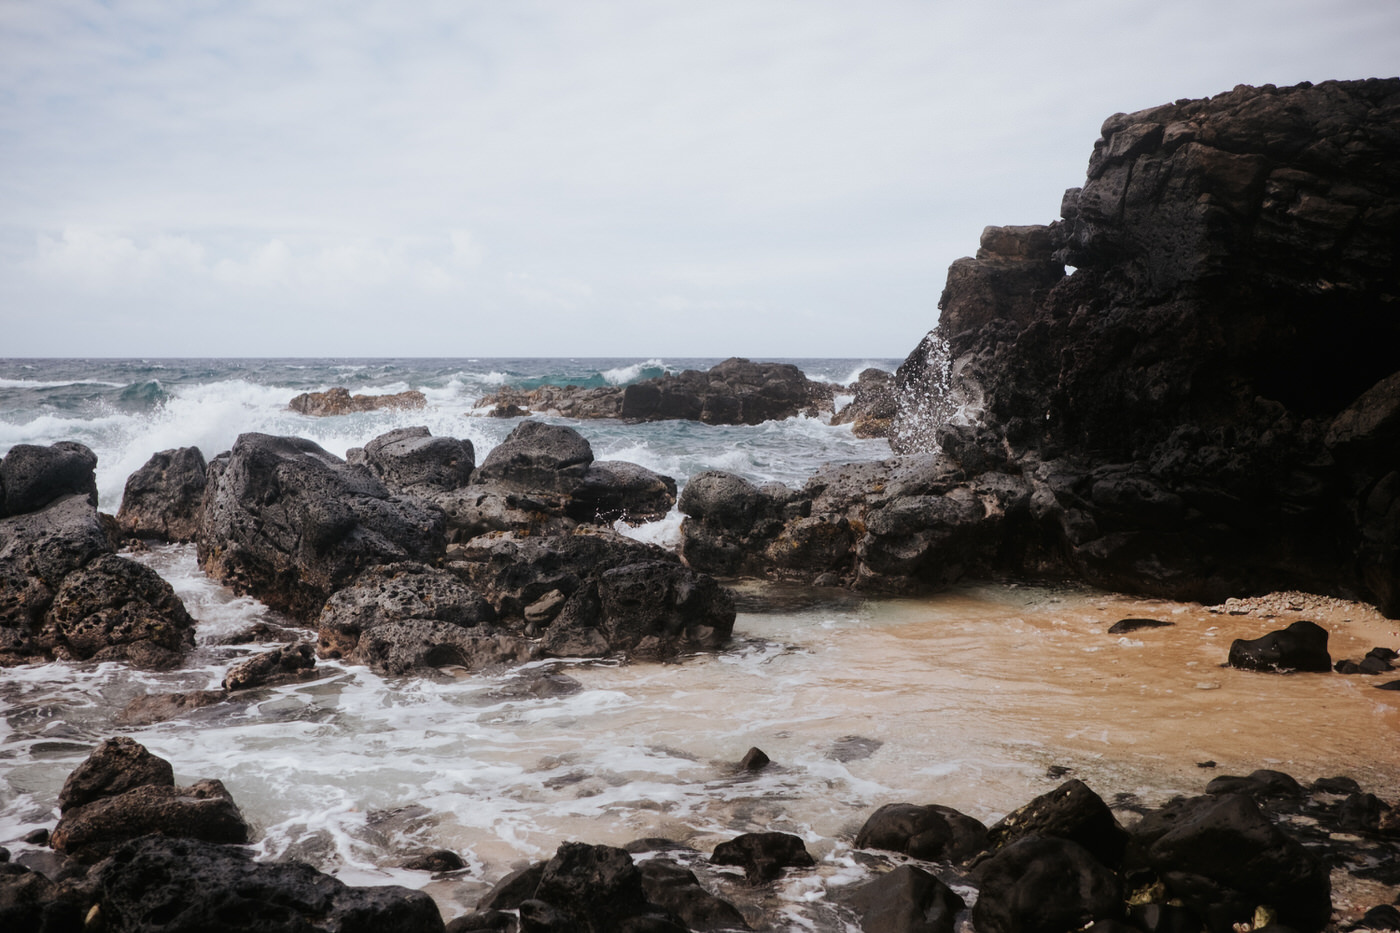 Pacific ocean photography in Hawaii